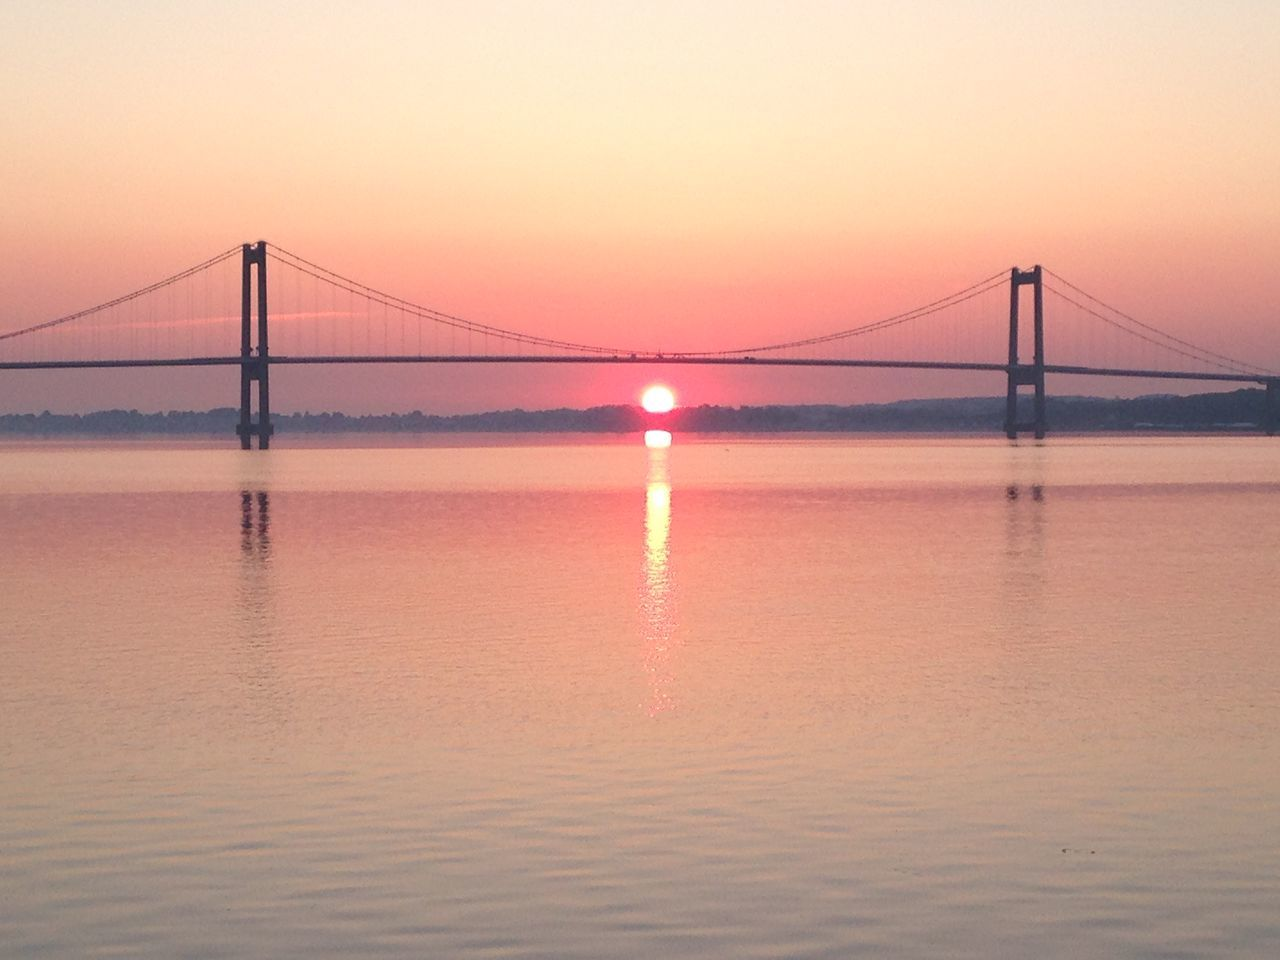 suspension bridge, bridge - man made structure, connection, engineering, sunset, tourism, sea, transportation, water, travel destinations, travel, architecture, sky, outdoors, built structure, nature, bridge, no people, beach, scenics, beauty in nature, horizon over water, day